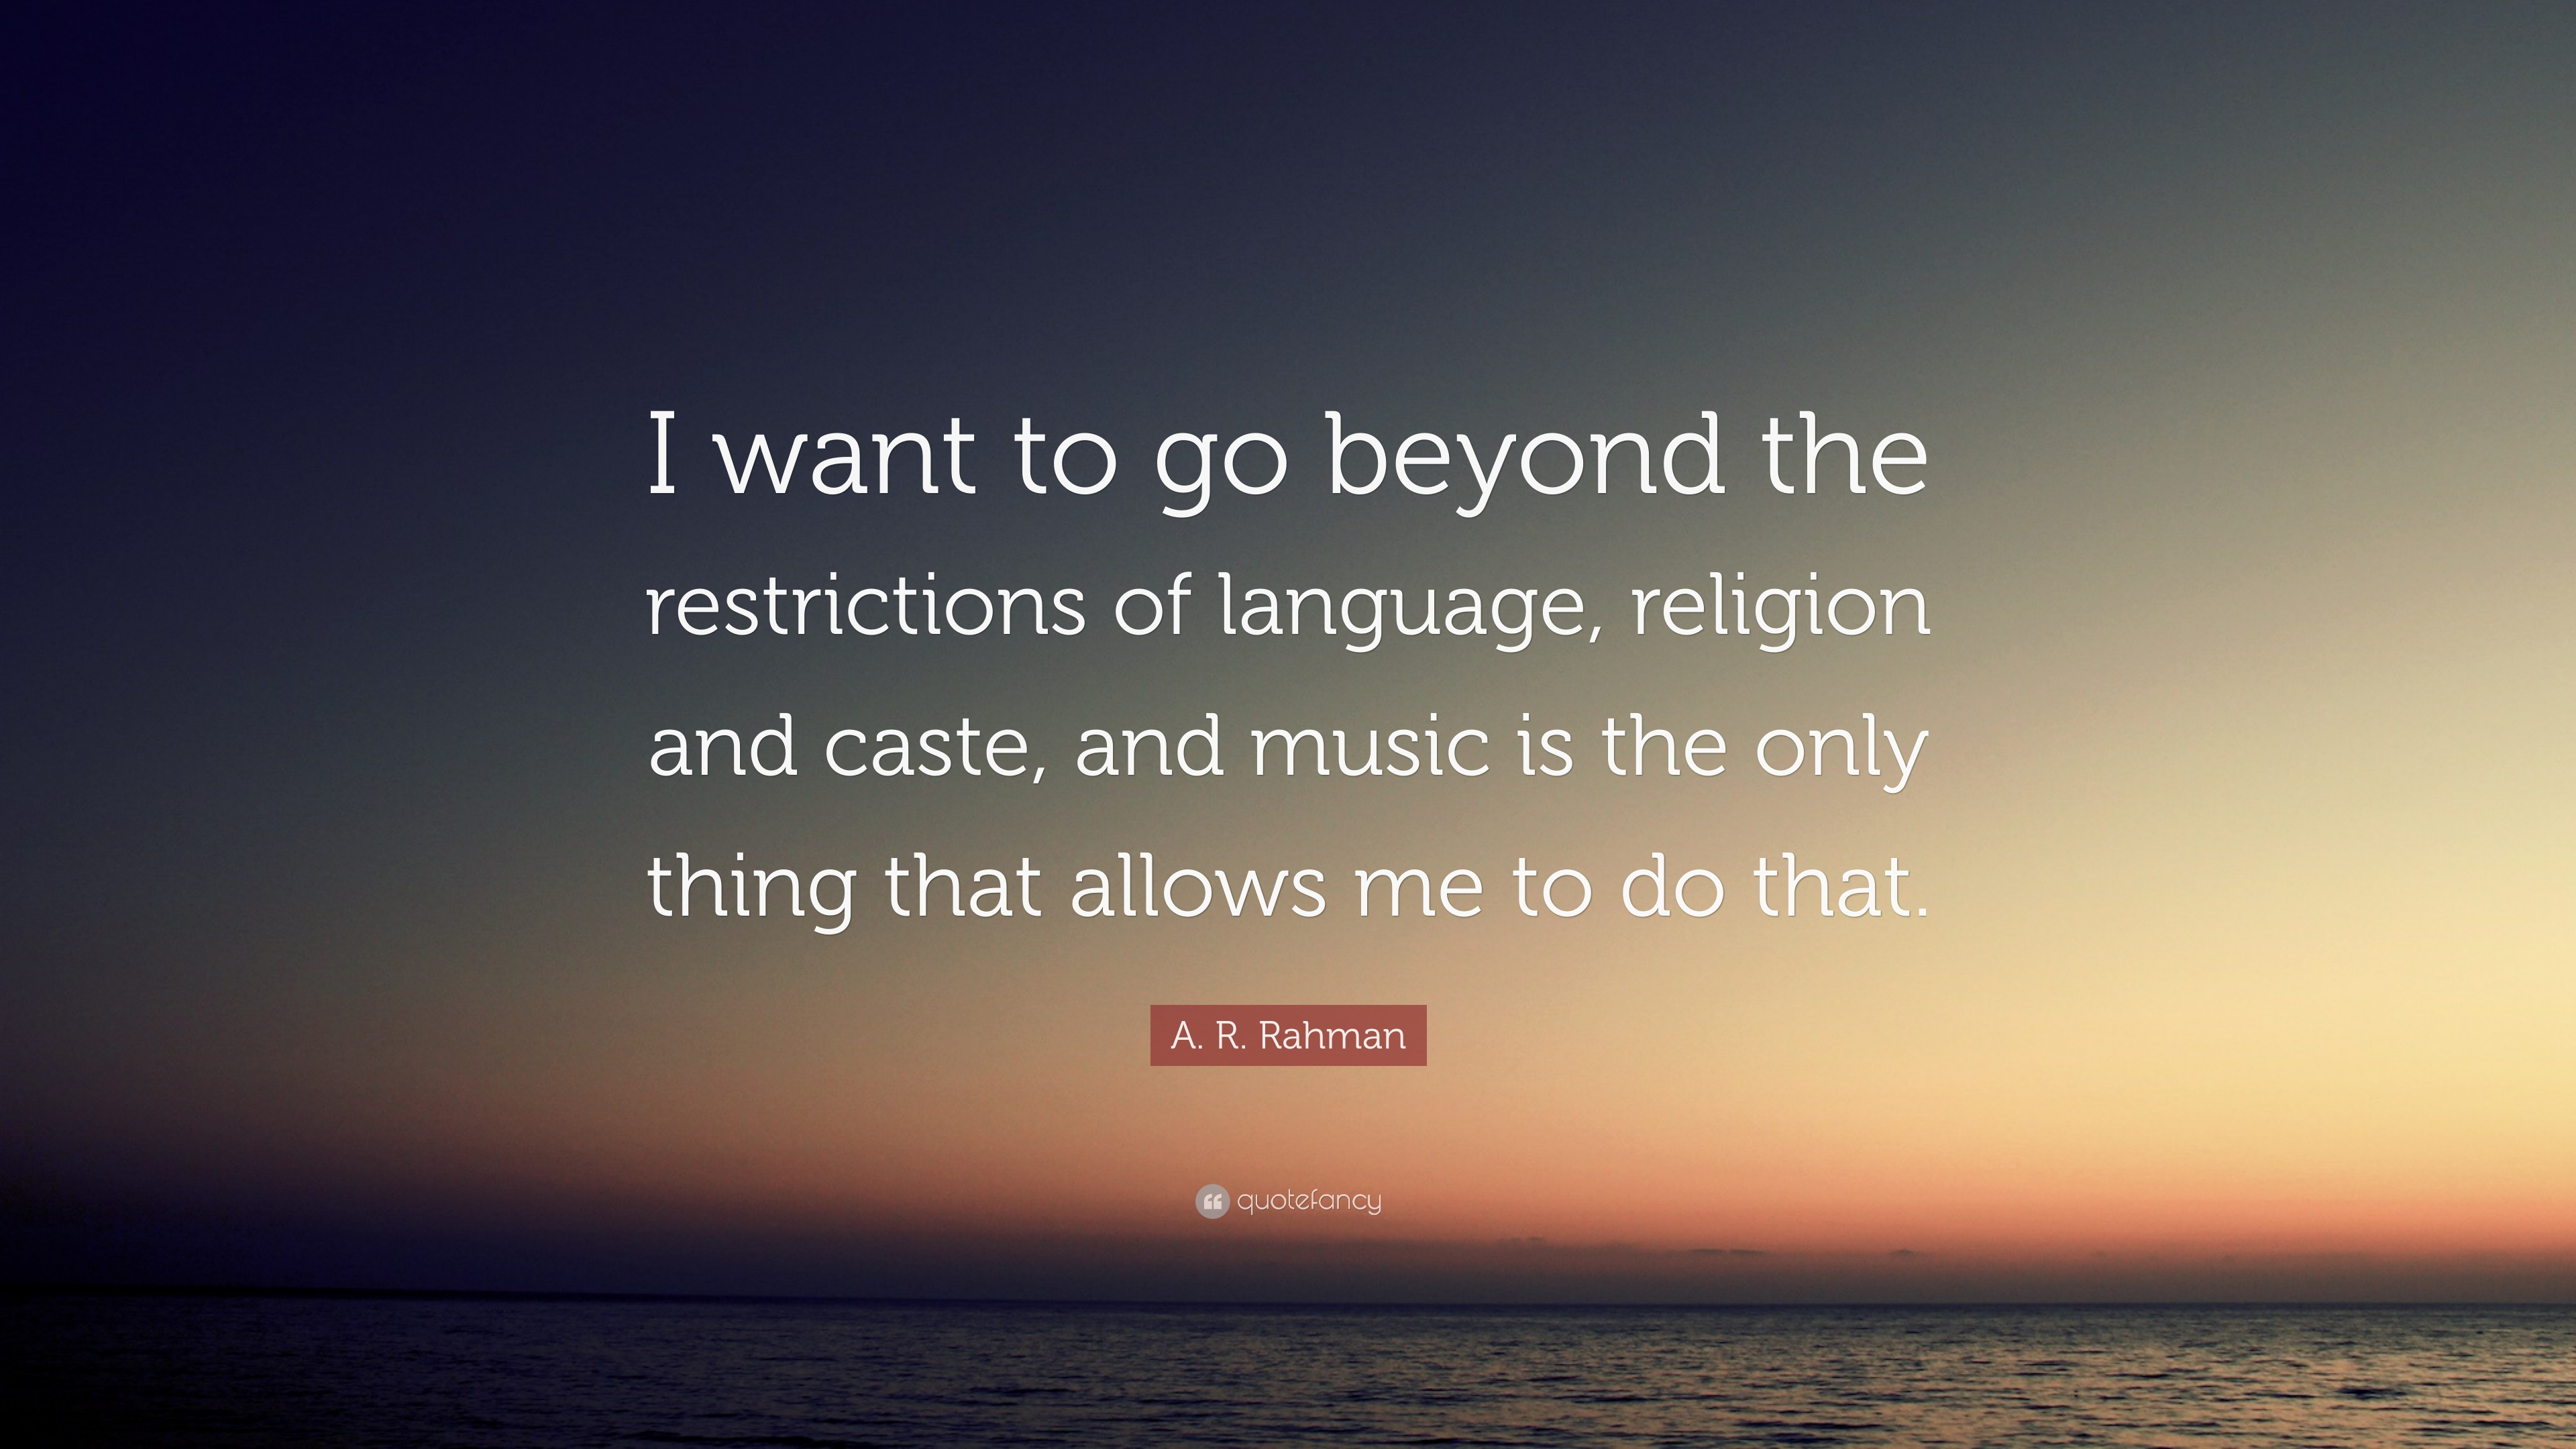 A R Rahman Quote I Want To Go Beyond The Restrictions Of